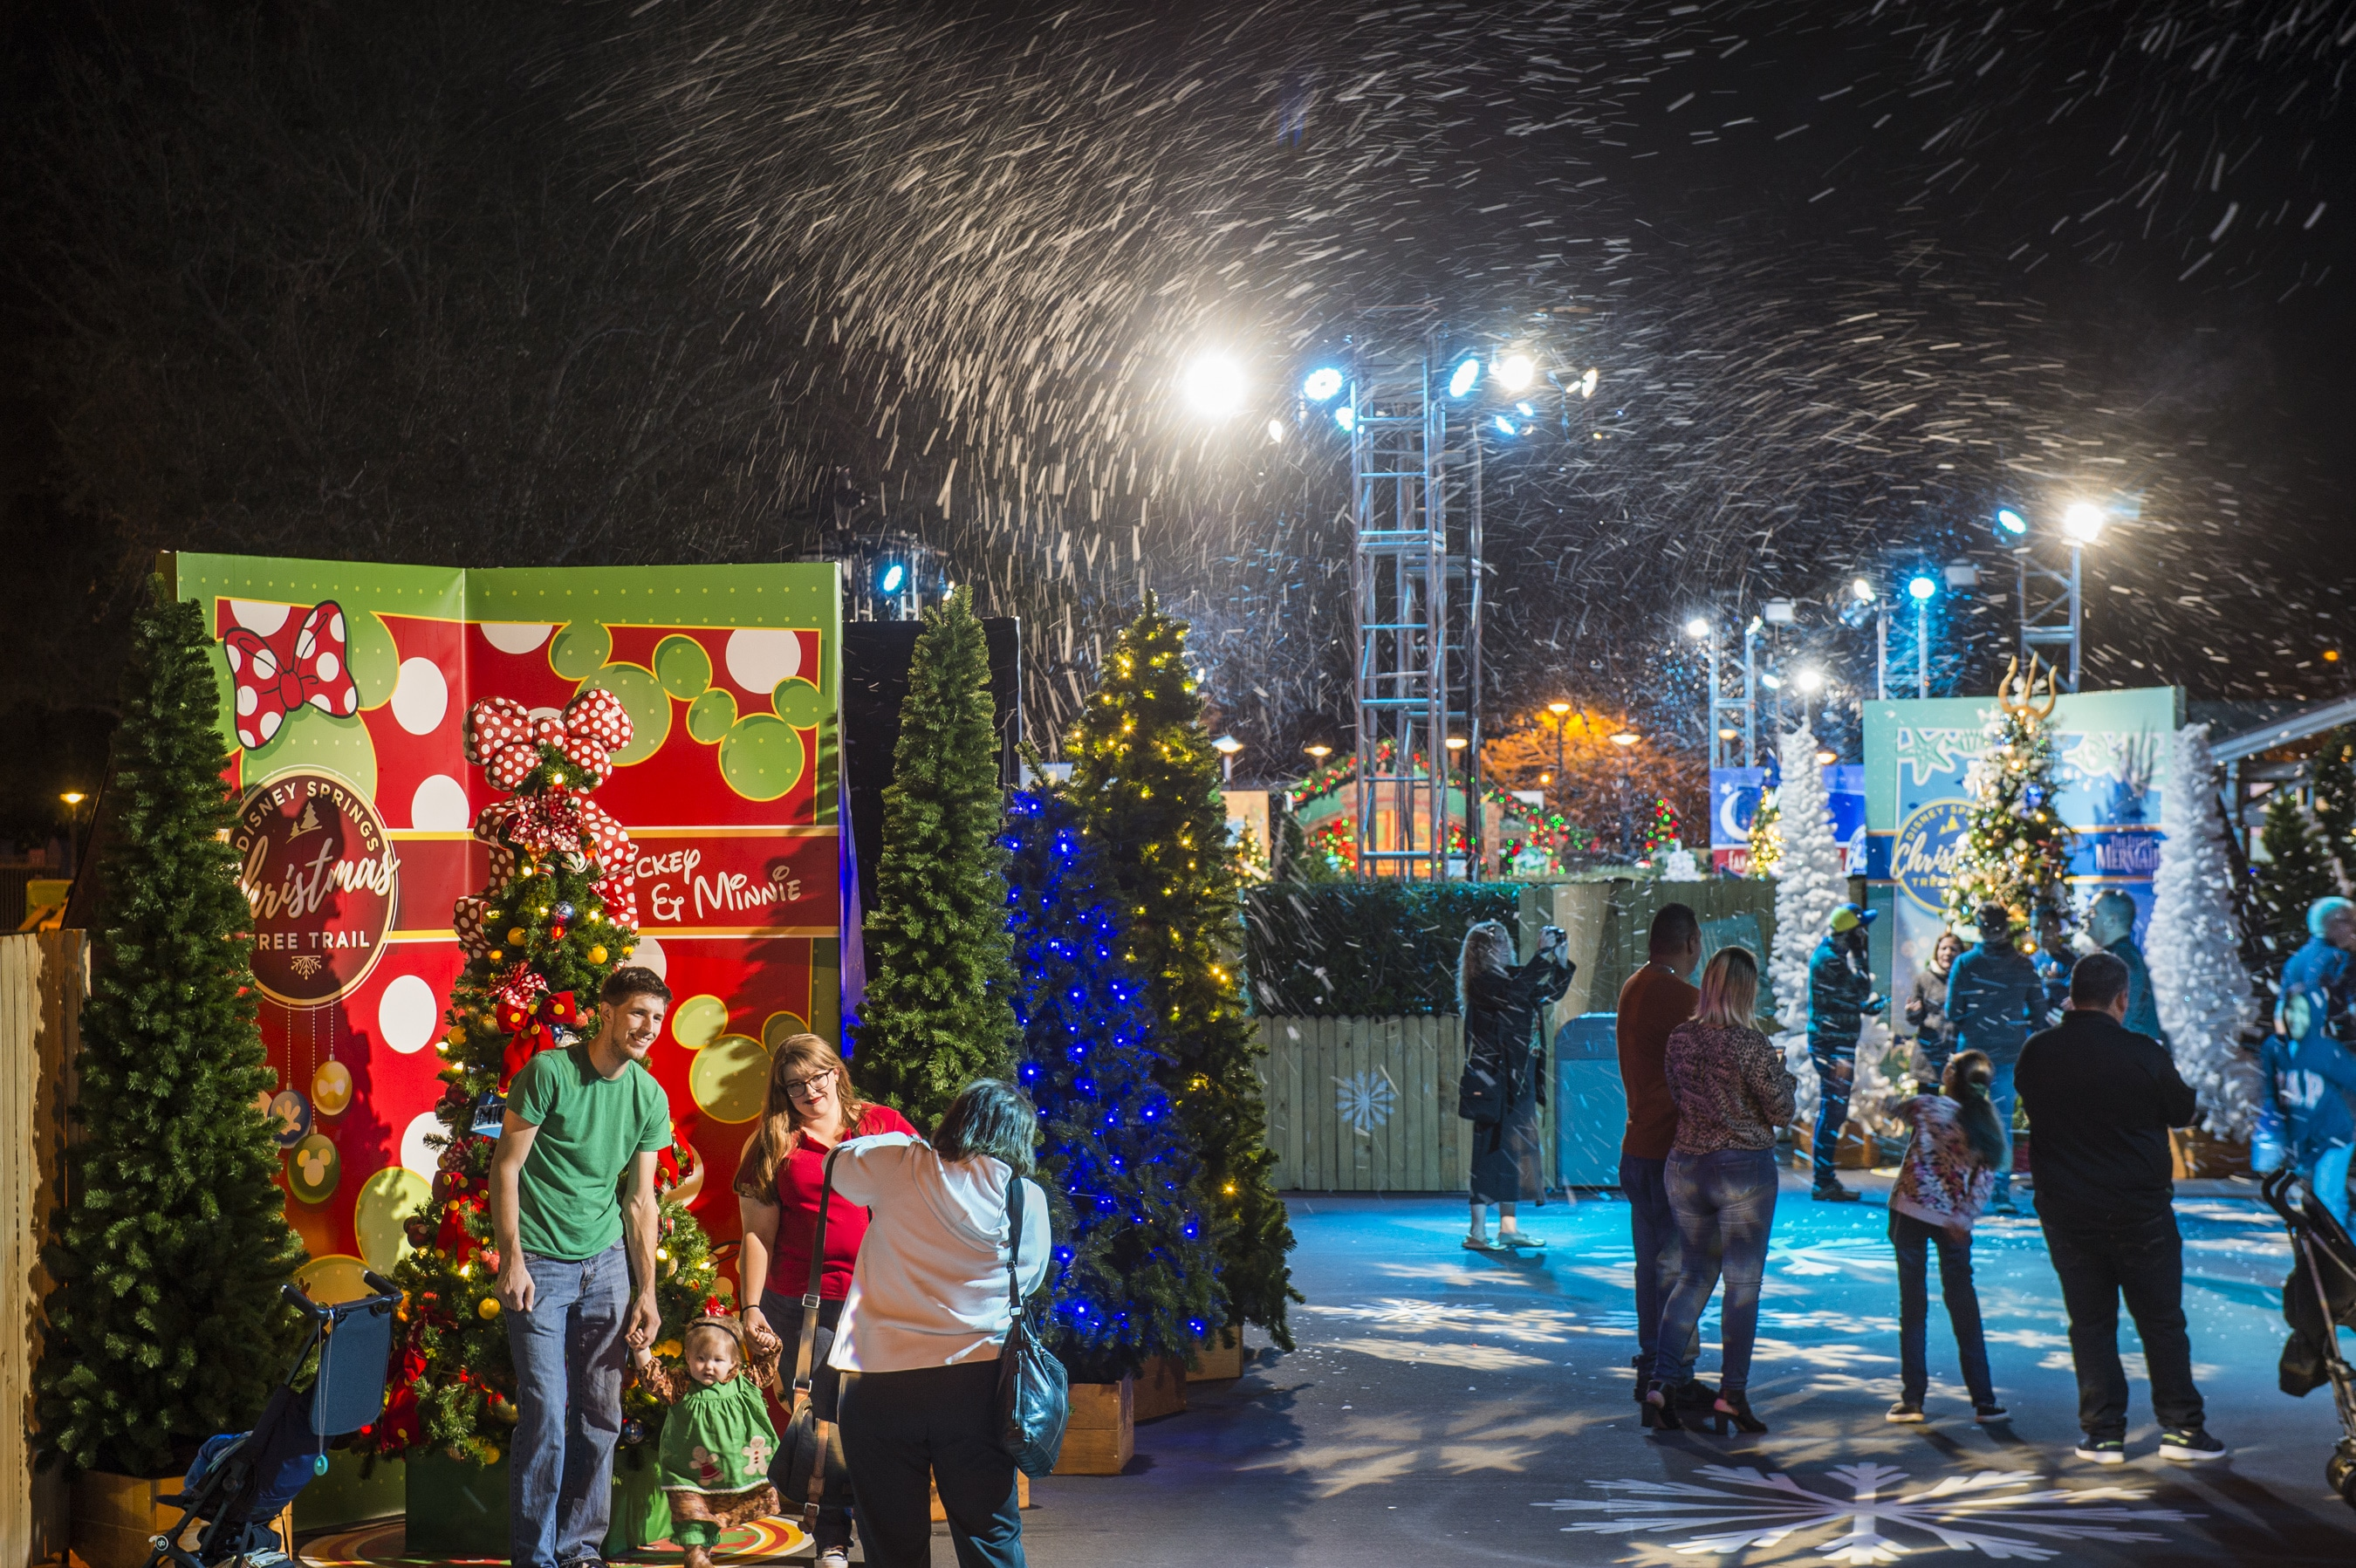 The Disney Springs' Christmas Tree Trail